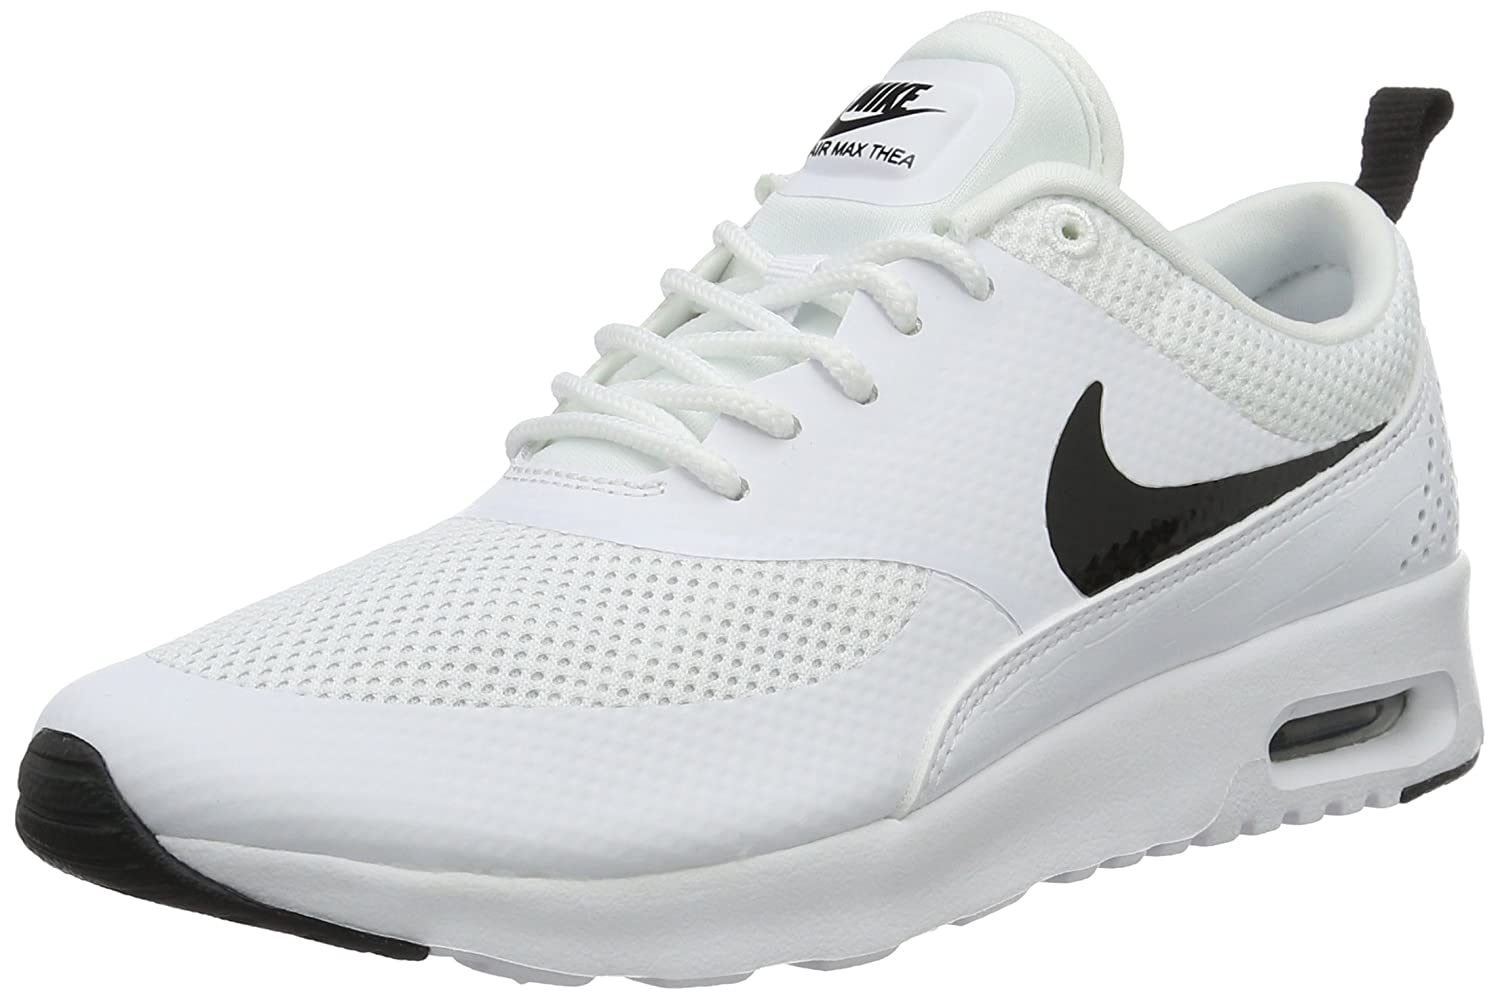 NIKE Women's Air Max Thea Low-Top Sneakers, Black B0187PYB7W 10 B(M) US|White/Black